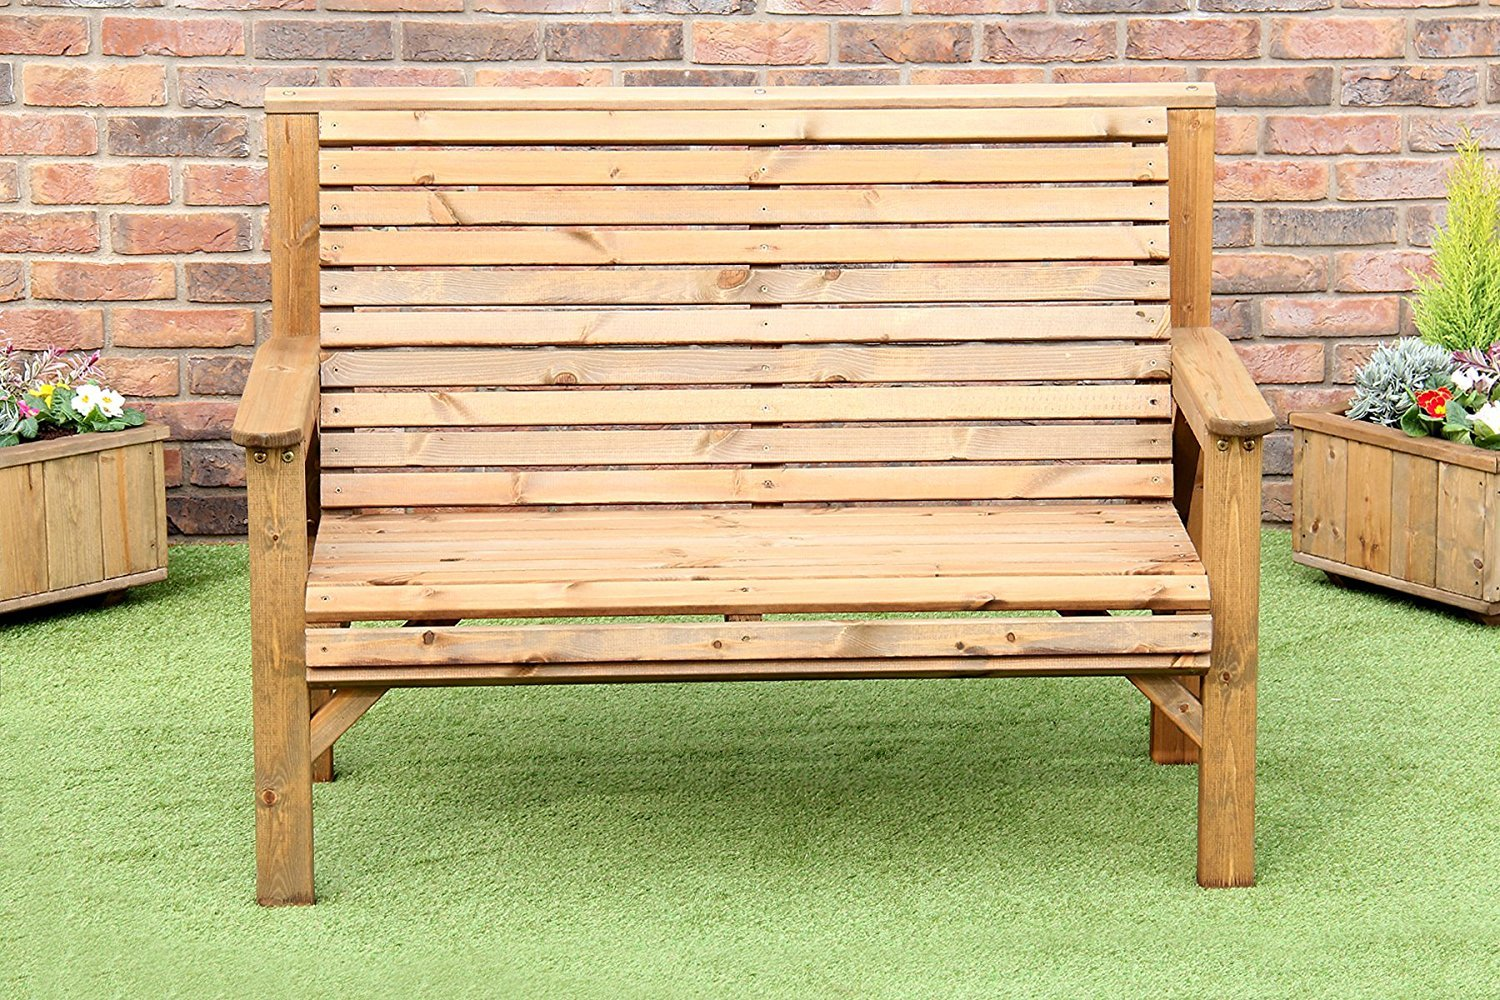 WOODEN GARDEN FURNITURE CHUNKY SOLID FULLY ASSEMBLED WOODEN GARDEN BENCH